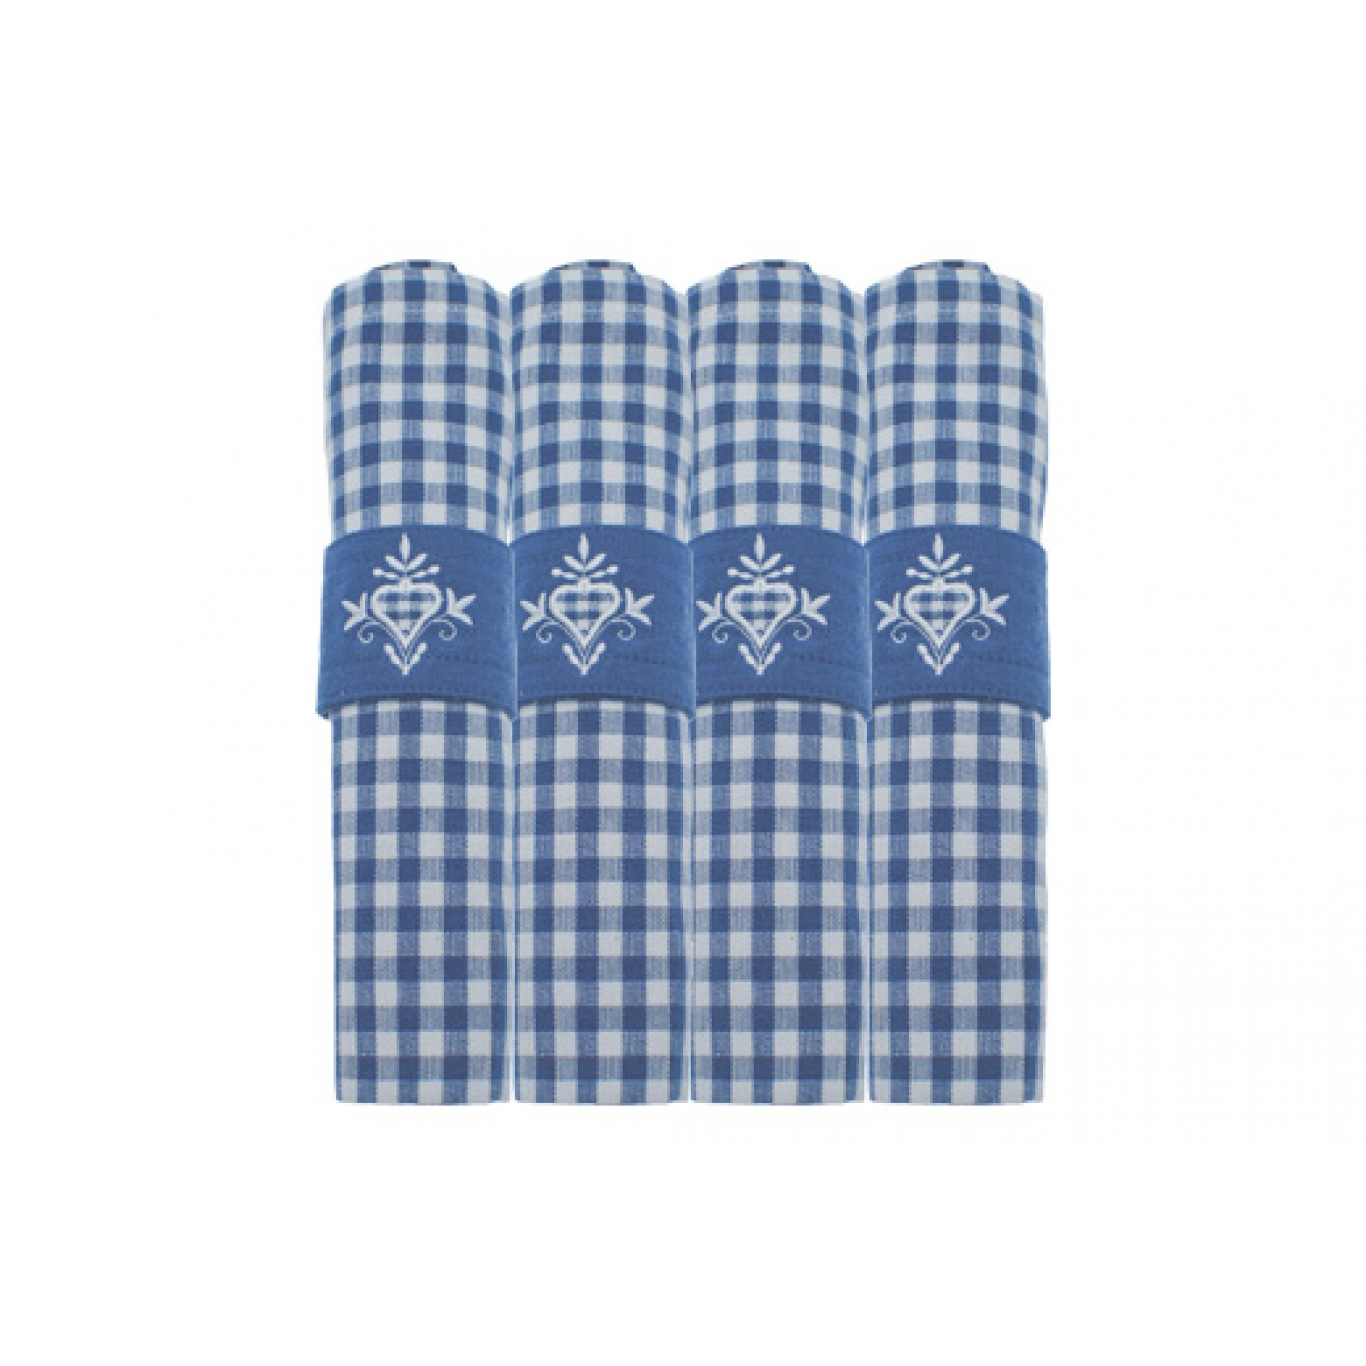 Image of Auberge Nordic Blue Check Napkins set of 4